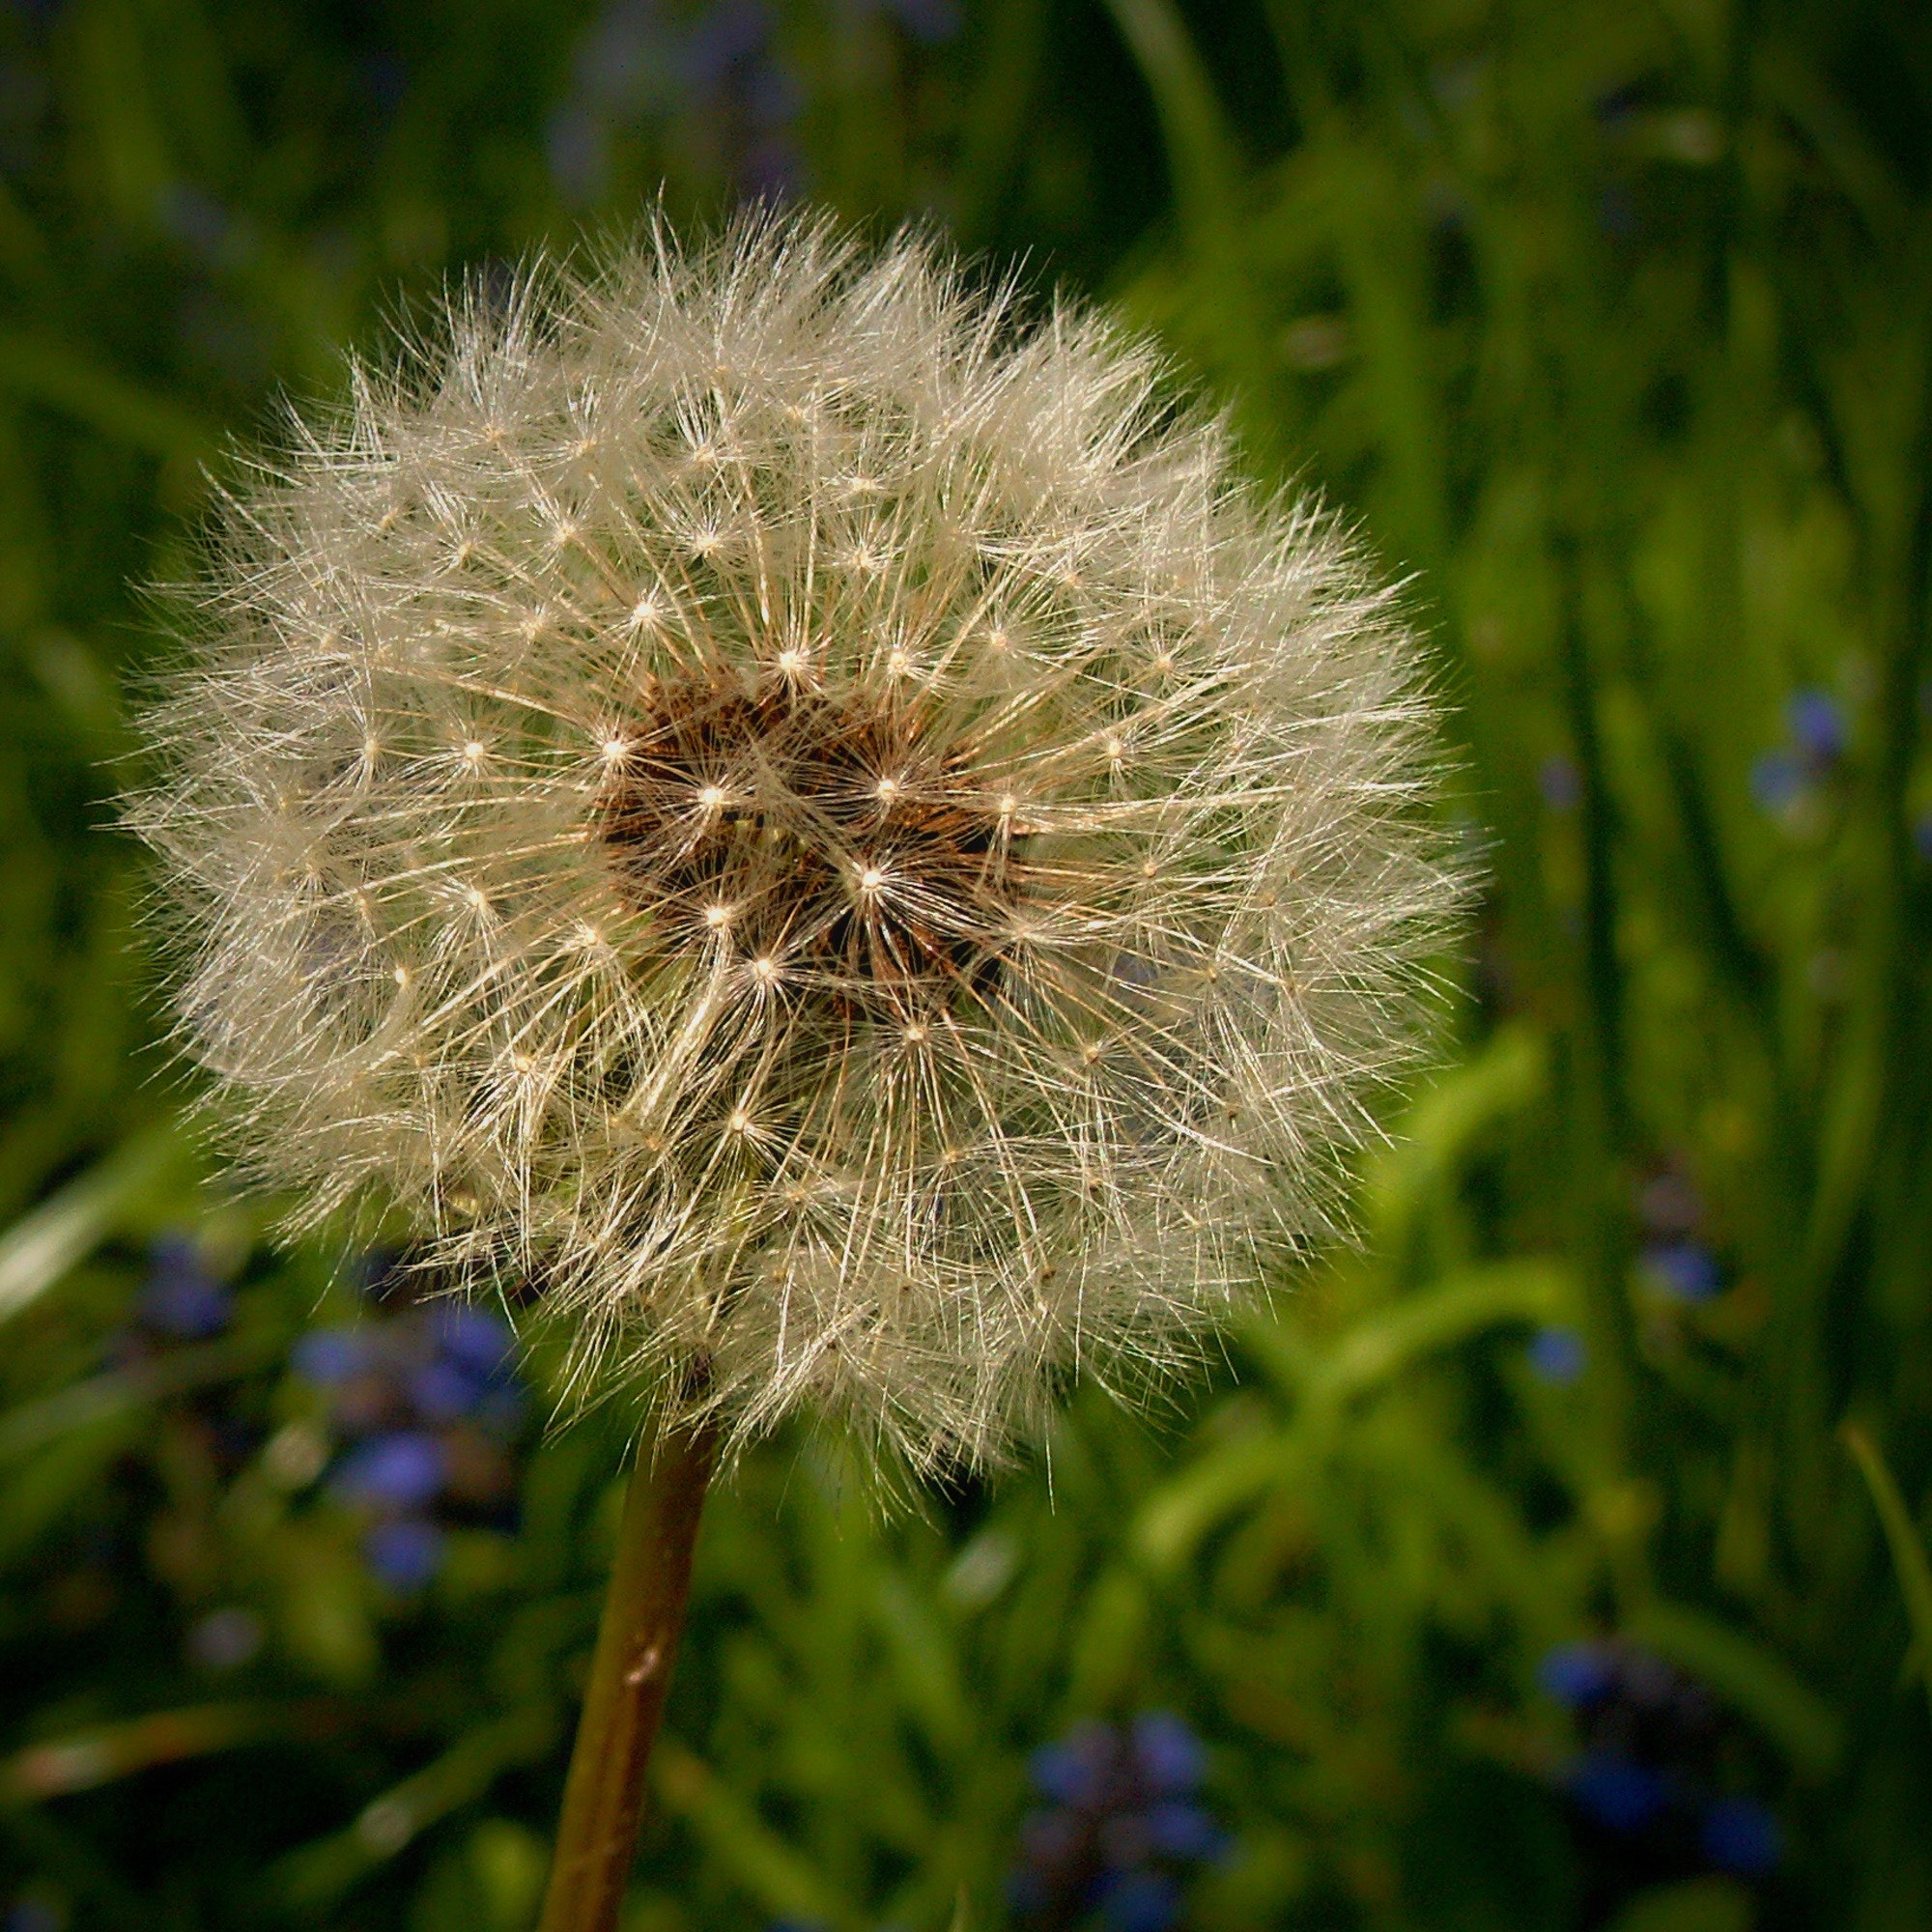 white dandelion flower in close up photograph 183 free stock